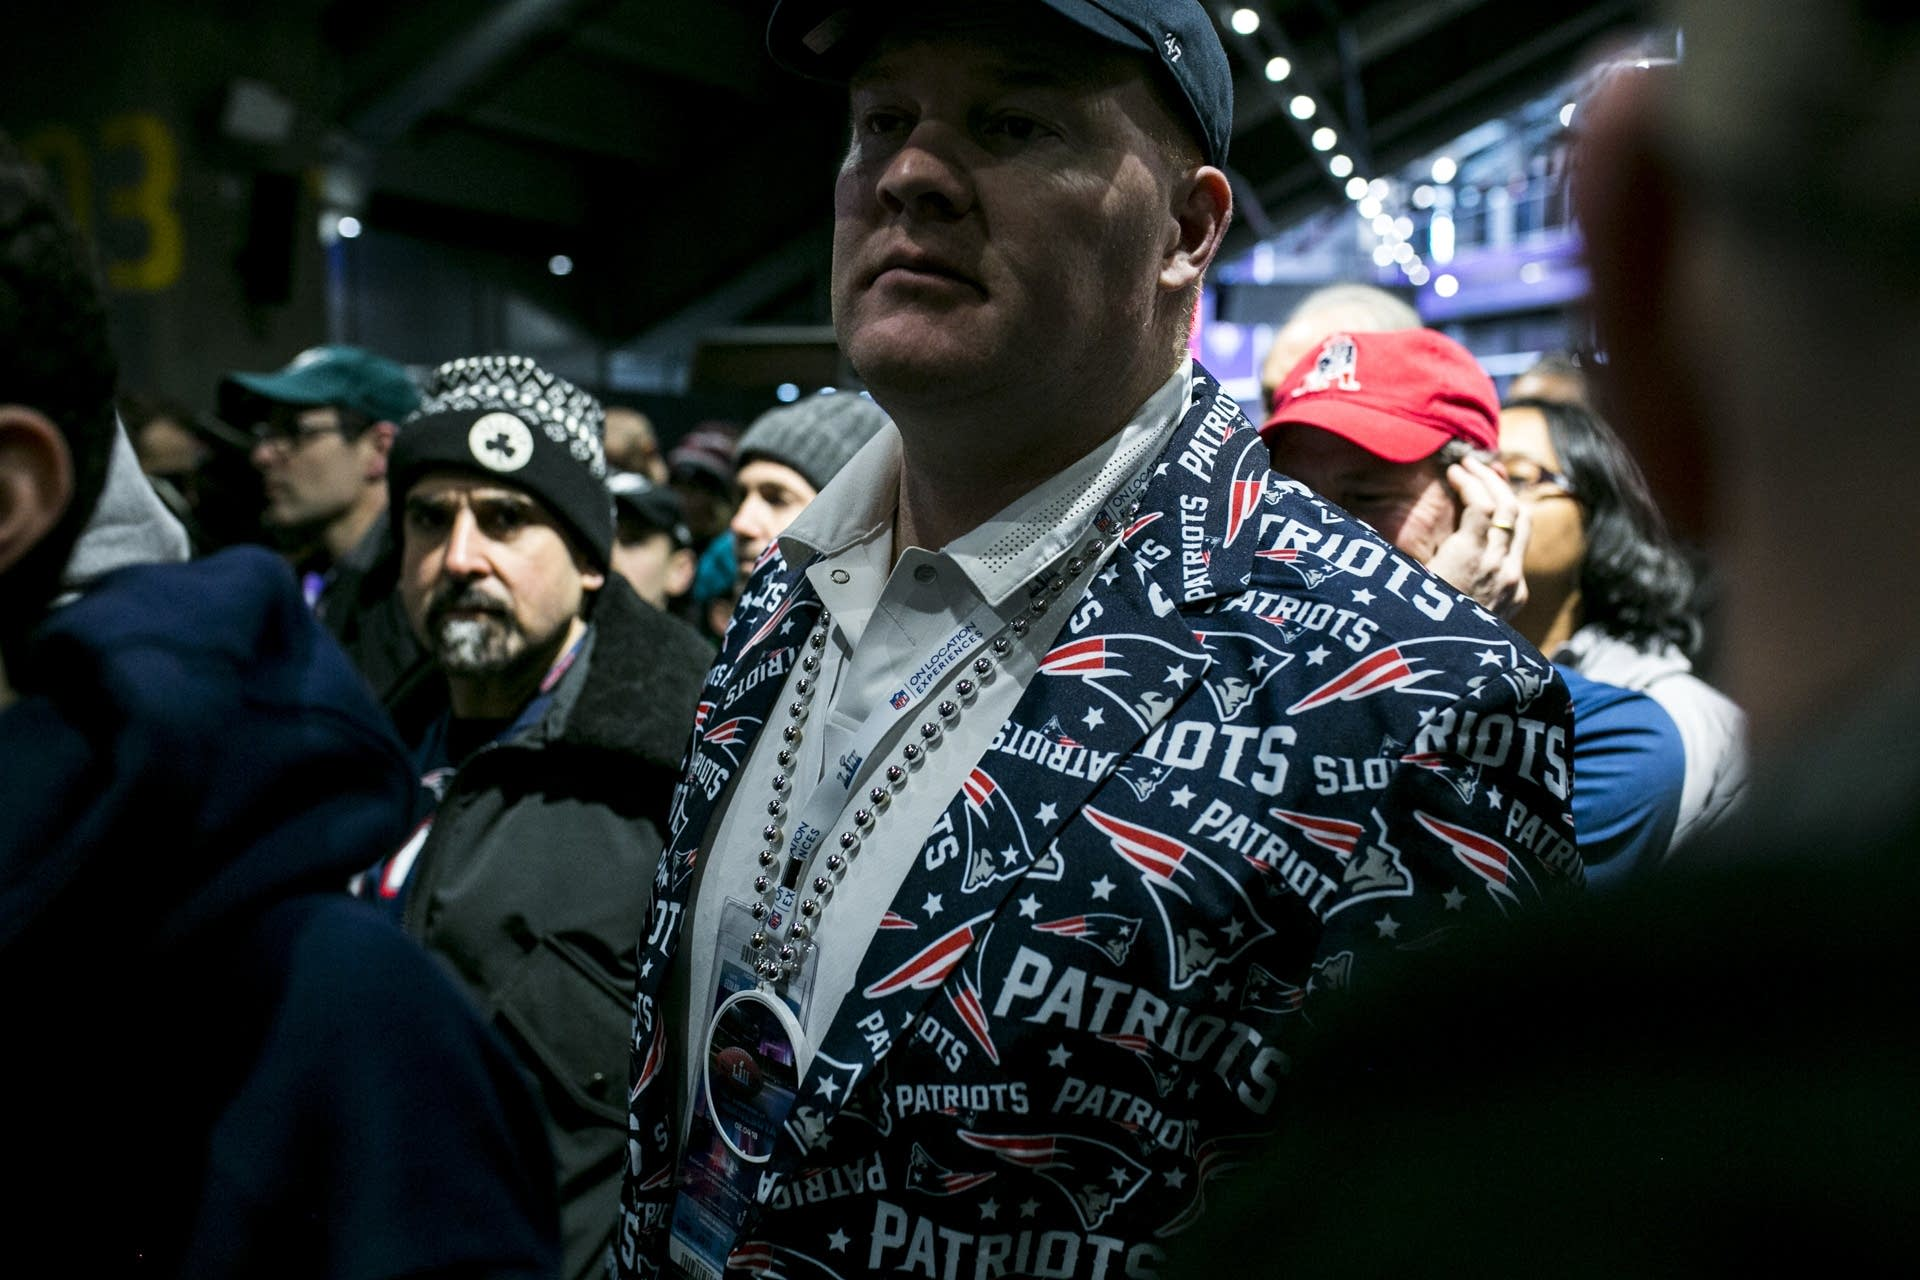 A man wearing a Patriots blazer cuts through the crowd.